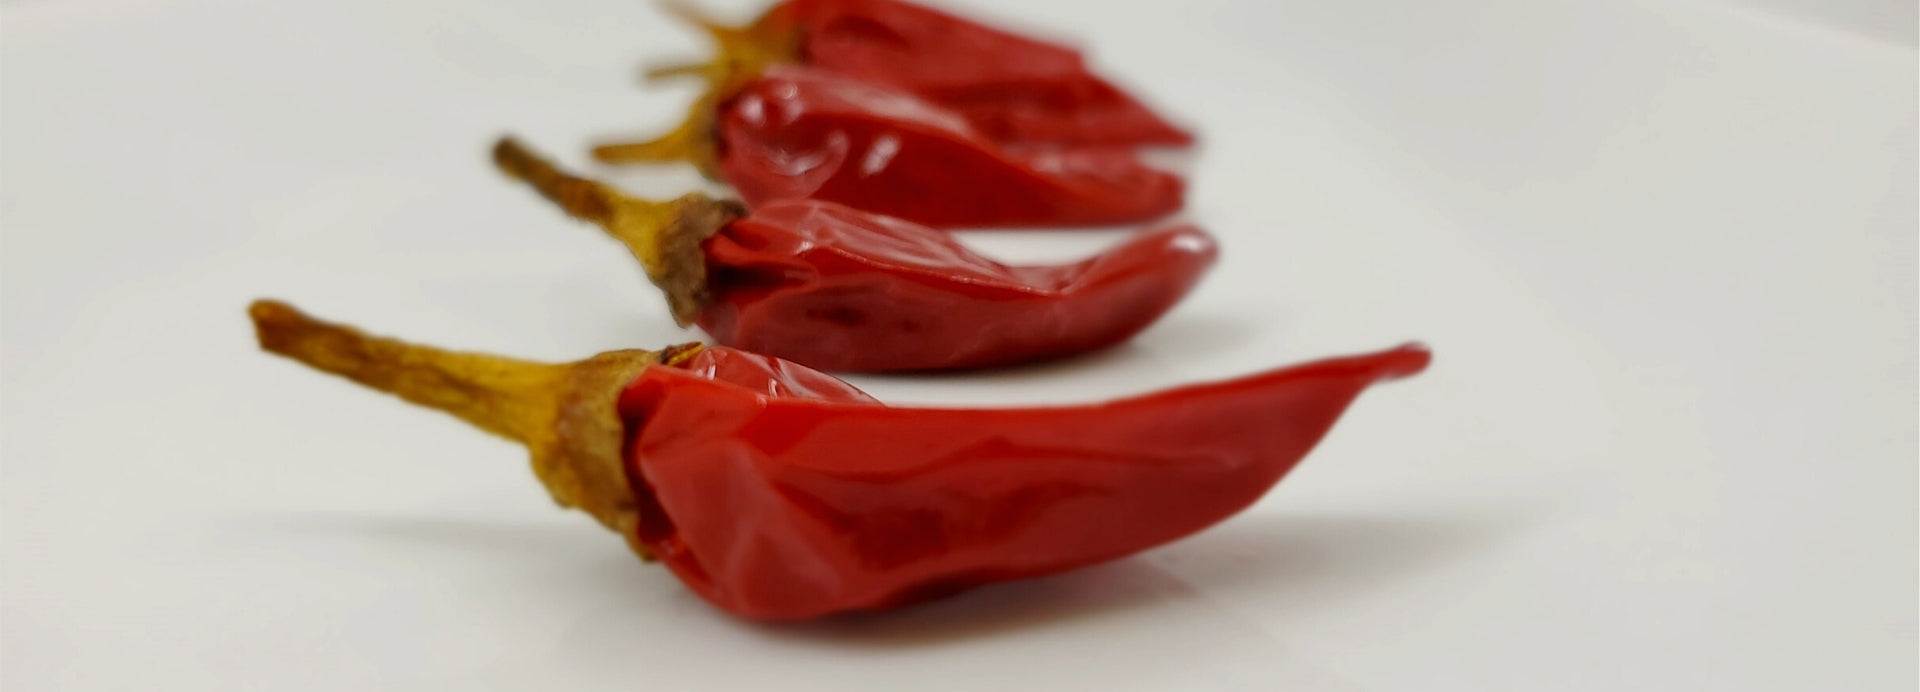 Wholesale Italian Food | Calabrian Chili Peppers